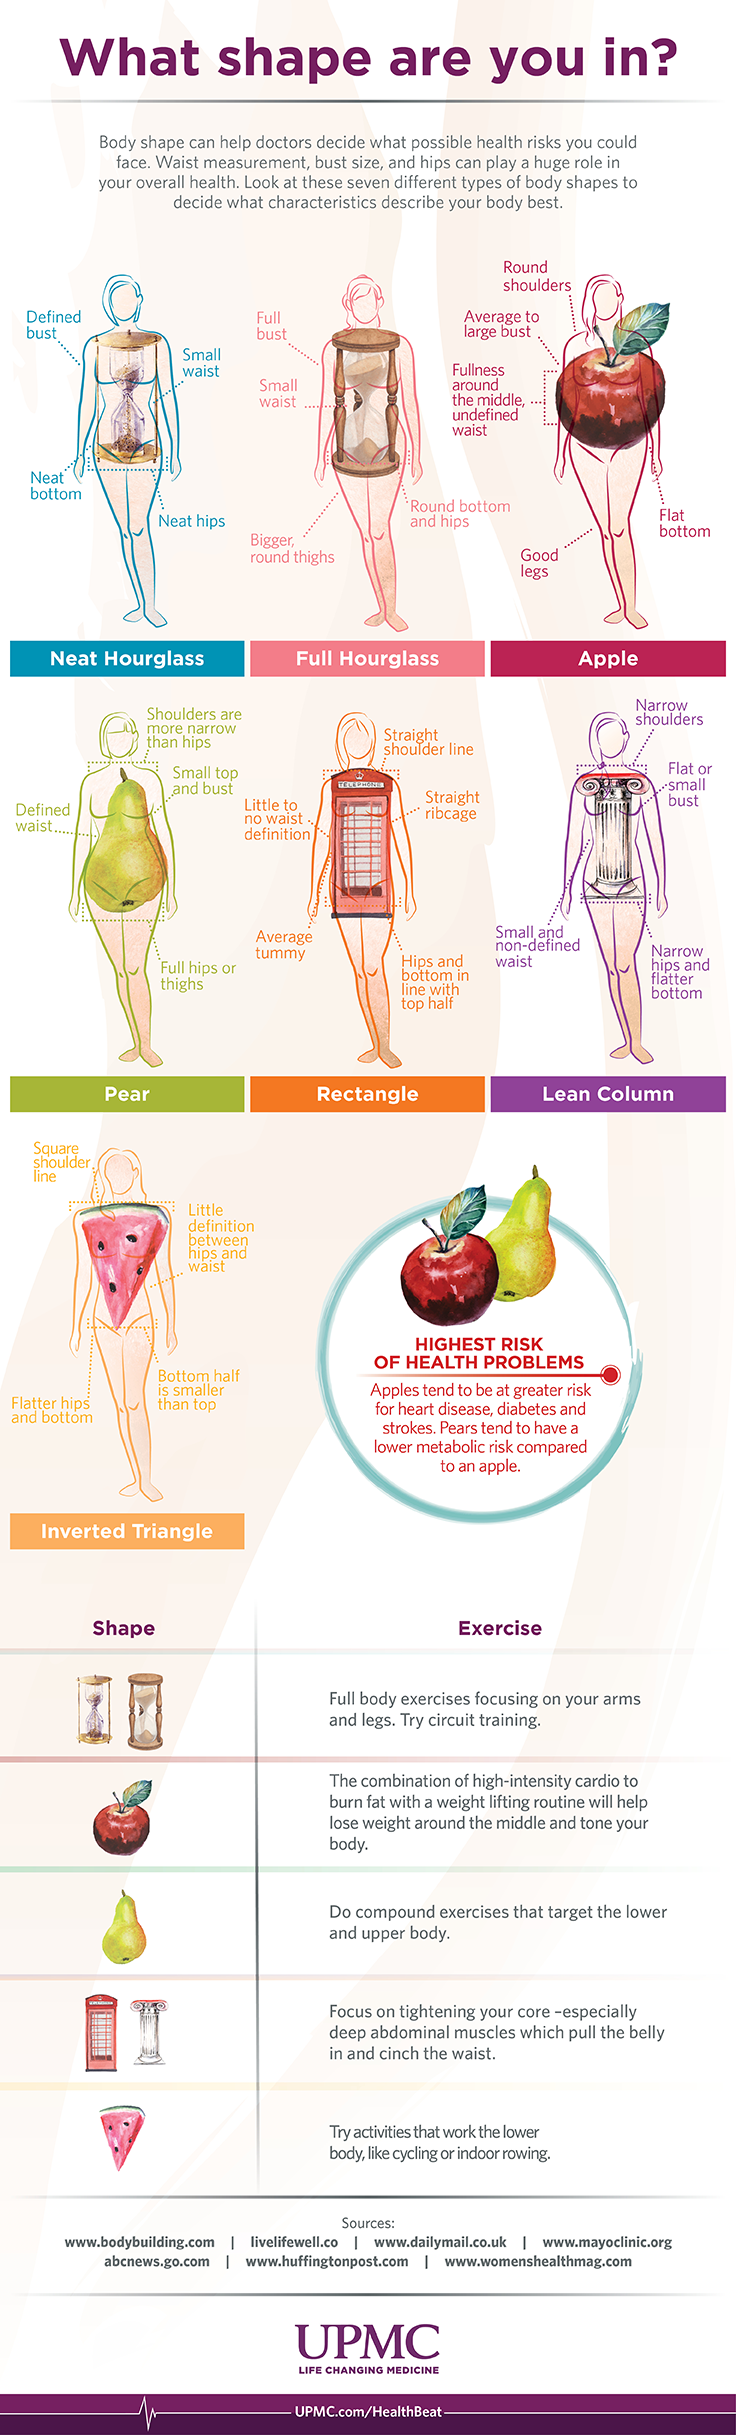 Learn more about body shape and health